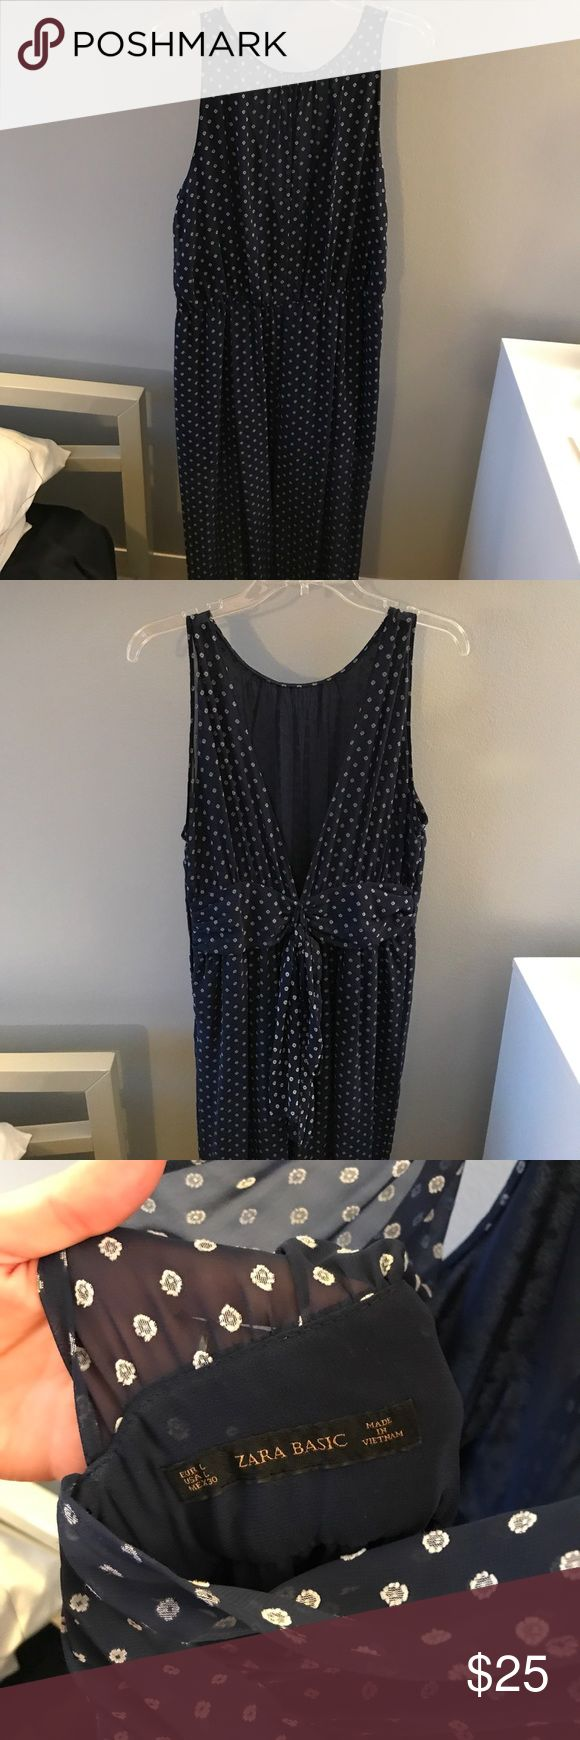 Zara jumpsuit Blue patterned Zara jumpsuit. Open back with tie detail. The fabric is mostly sheer. Wide, flowy legs. Fits small - I typically wear a small or medium in Zara and this is a large. Zara Pants Jumpsuits & Rompers